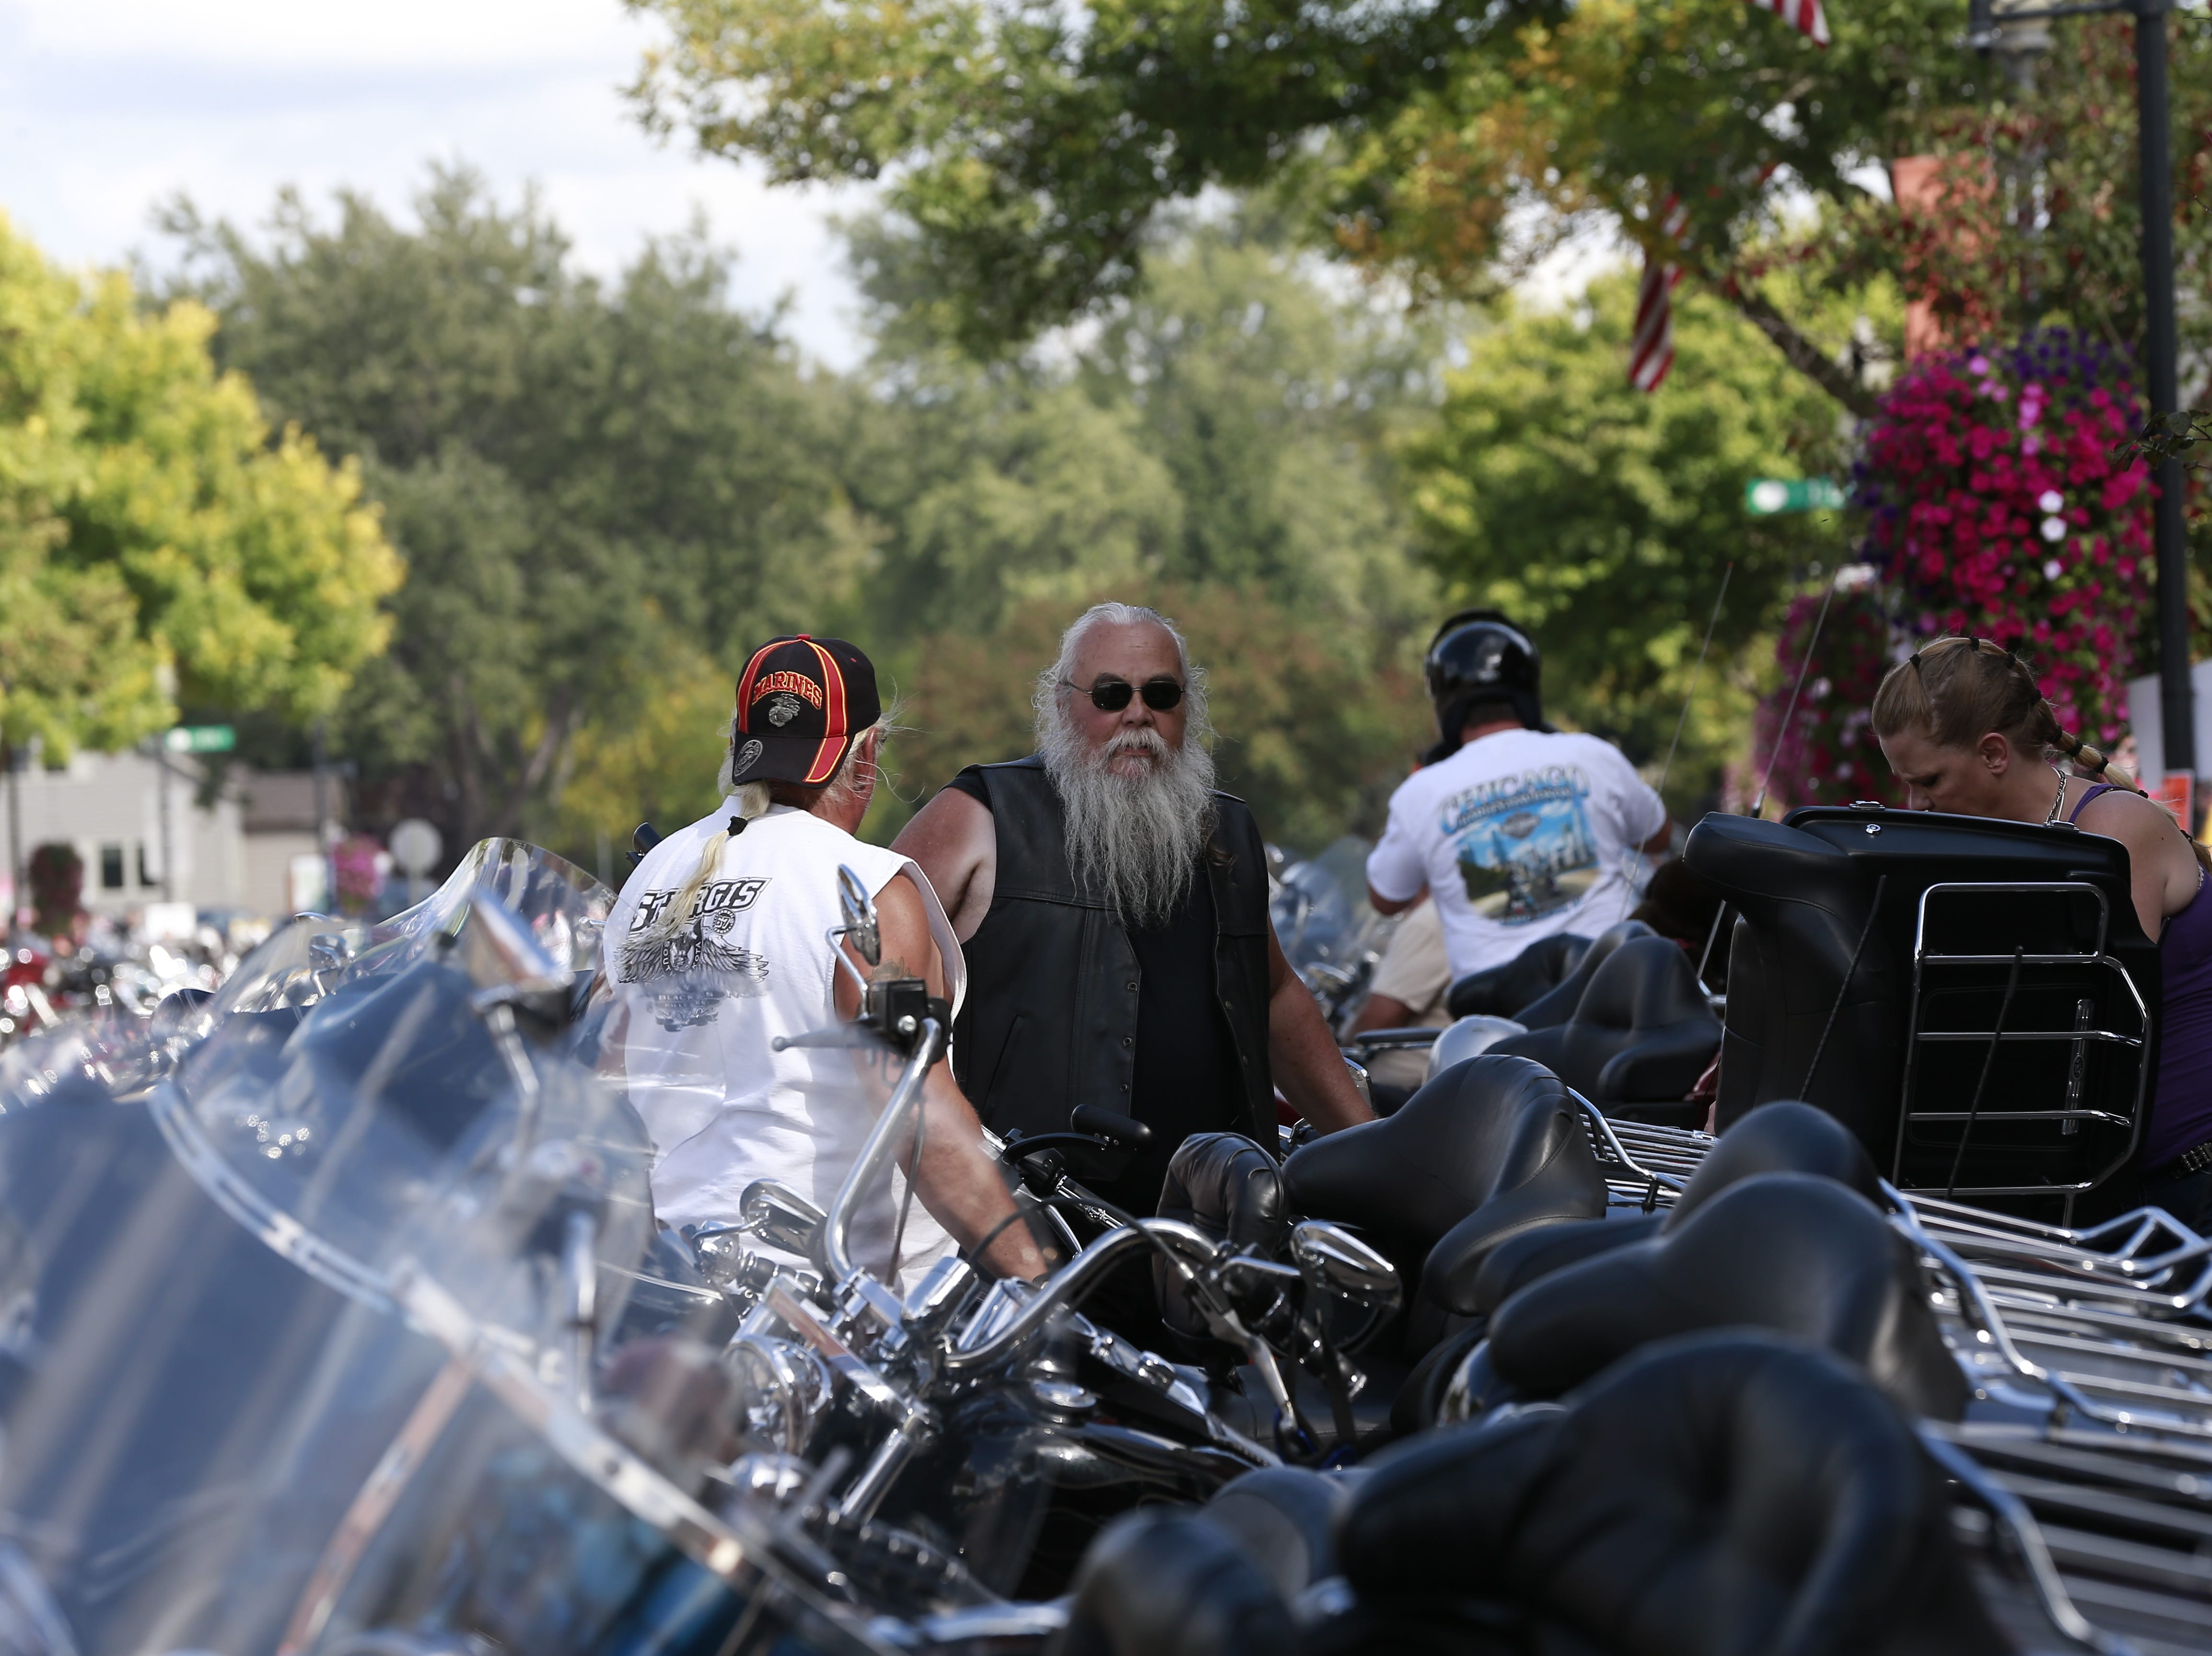 Bikers check on motorcycles during the 37th Annual Tomahawk Fall Ride Friday, Sept. 14, 2018, at downtown Tomahawk, Wis. T'xer Zhon Kha/USA TODAY NETWORK-Wisconsin